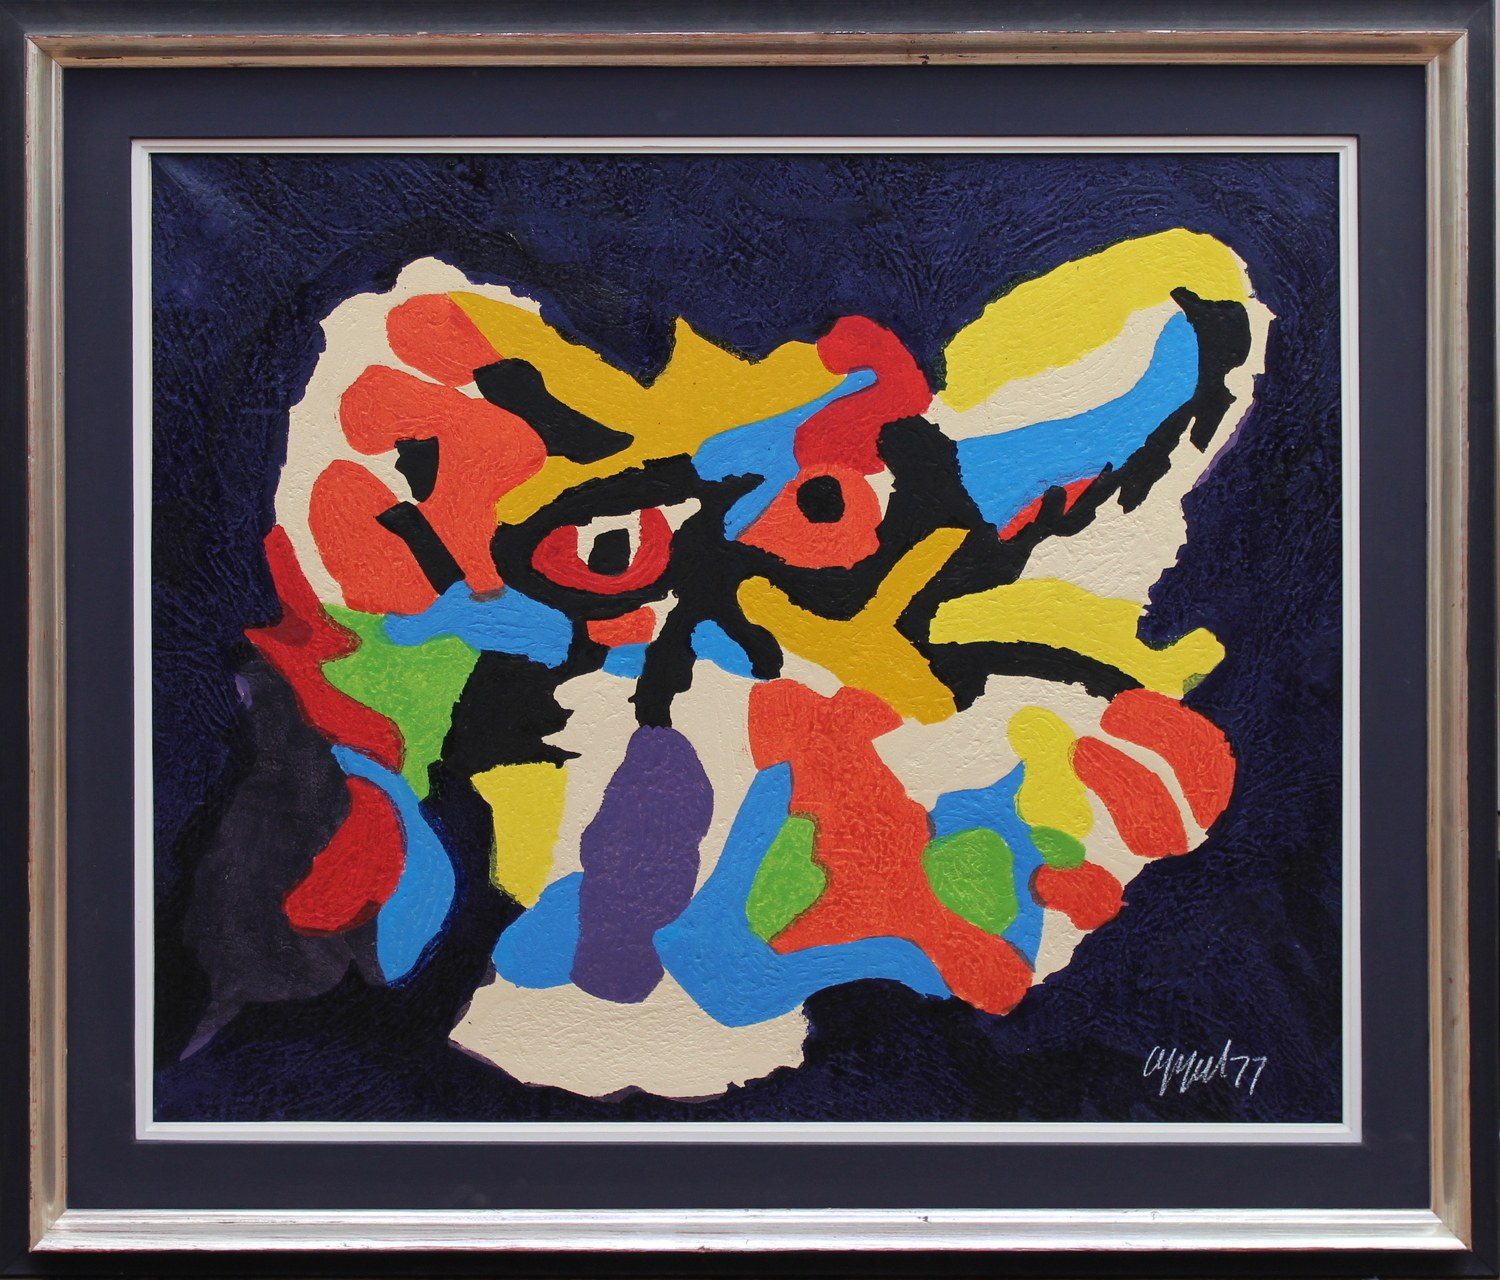 Karel Appel-Composition with wild beast-1977